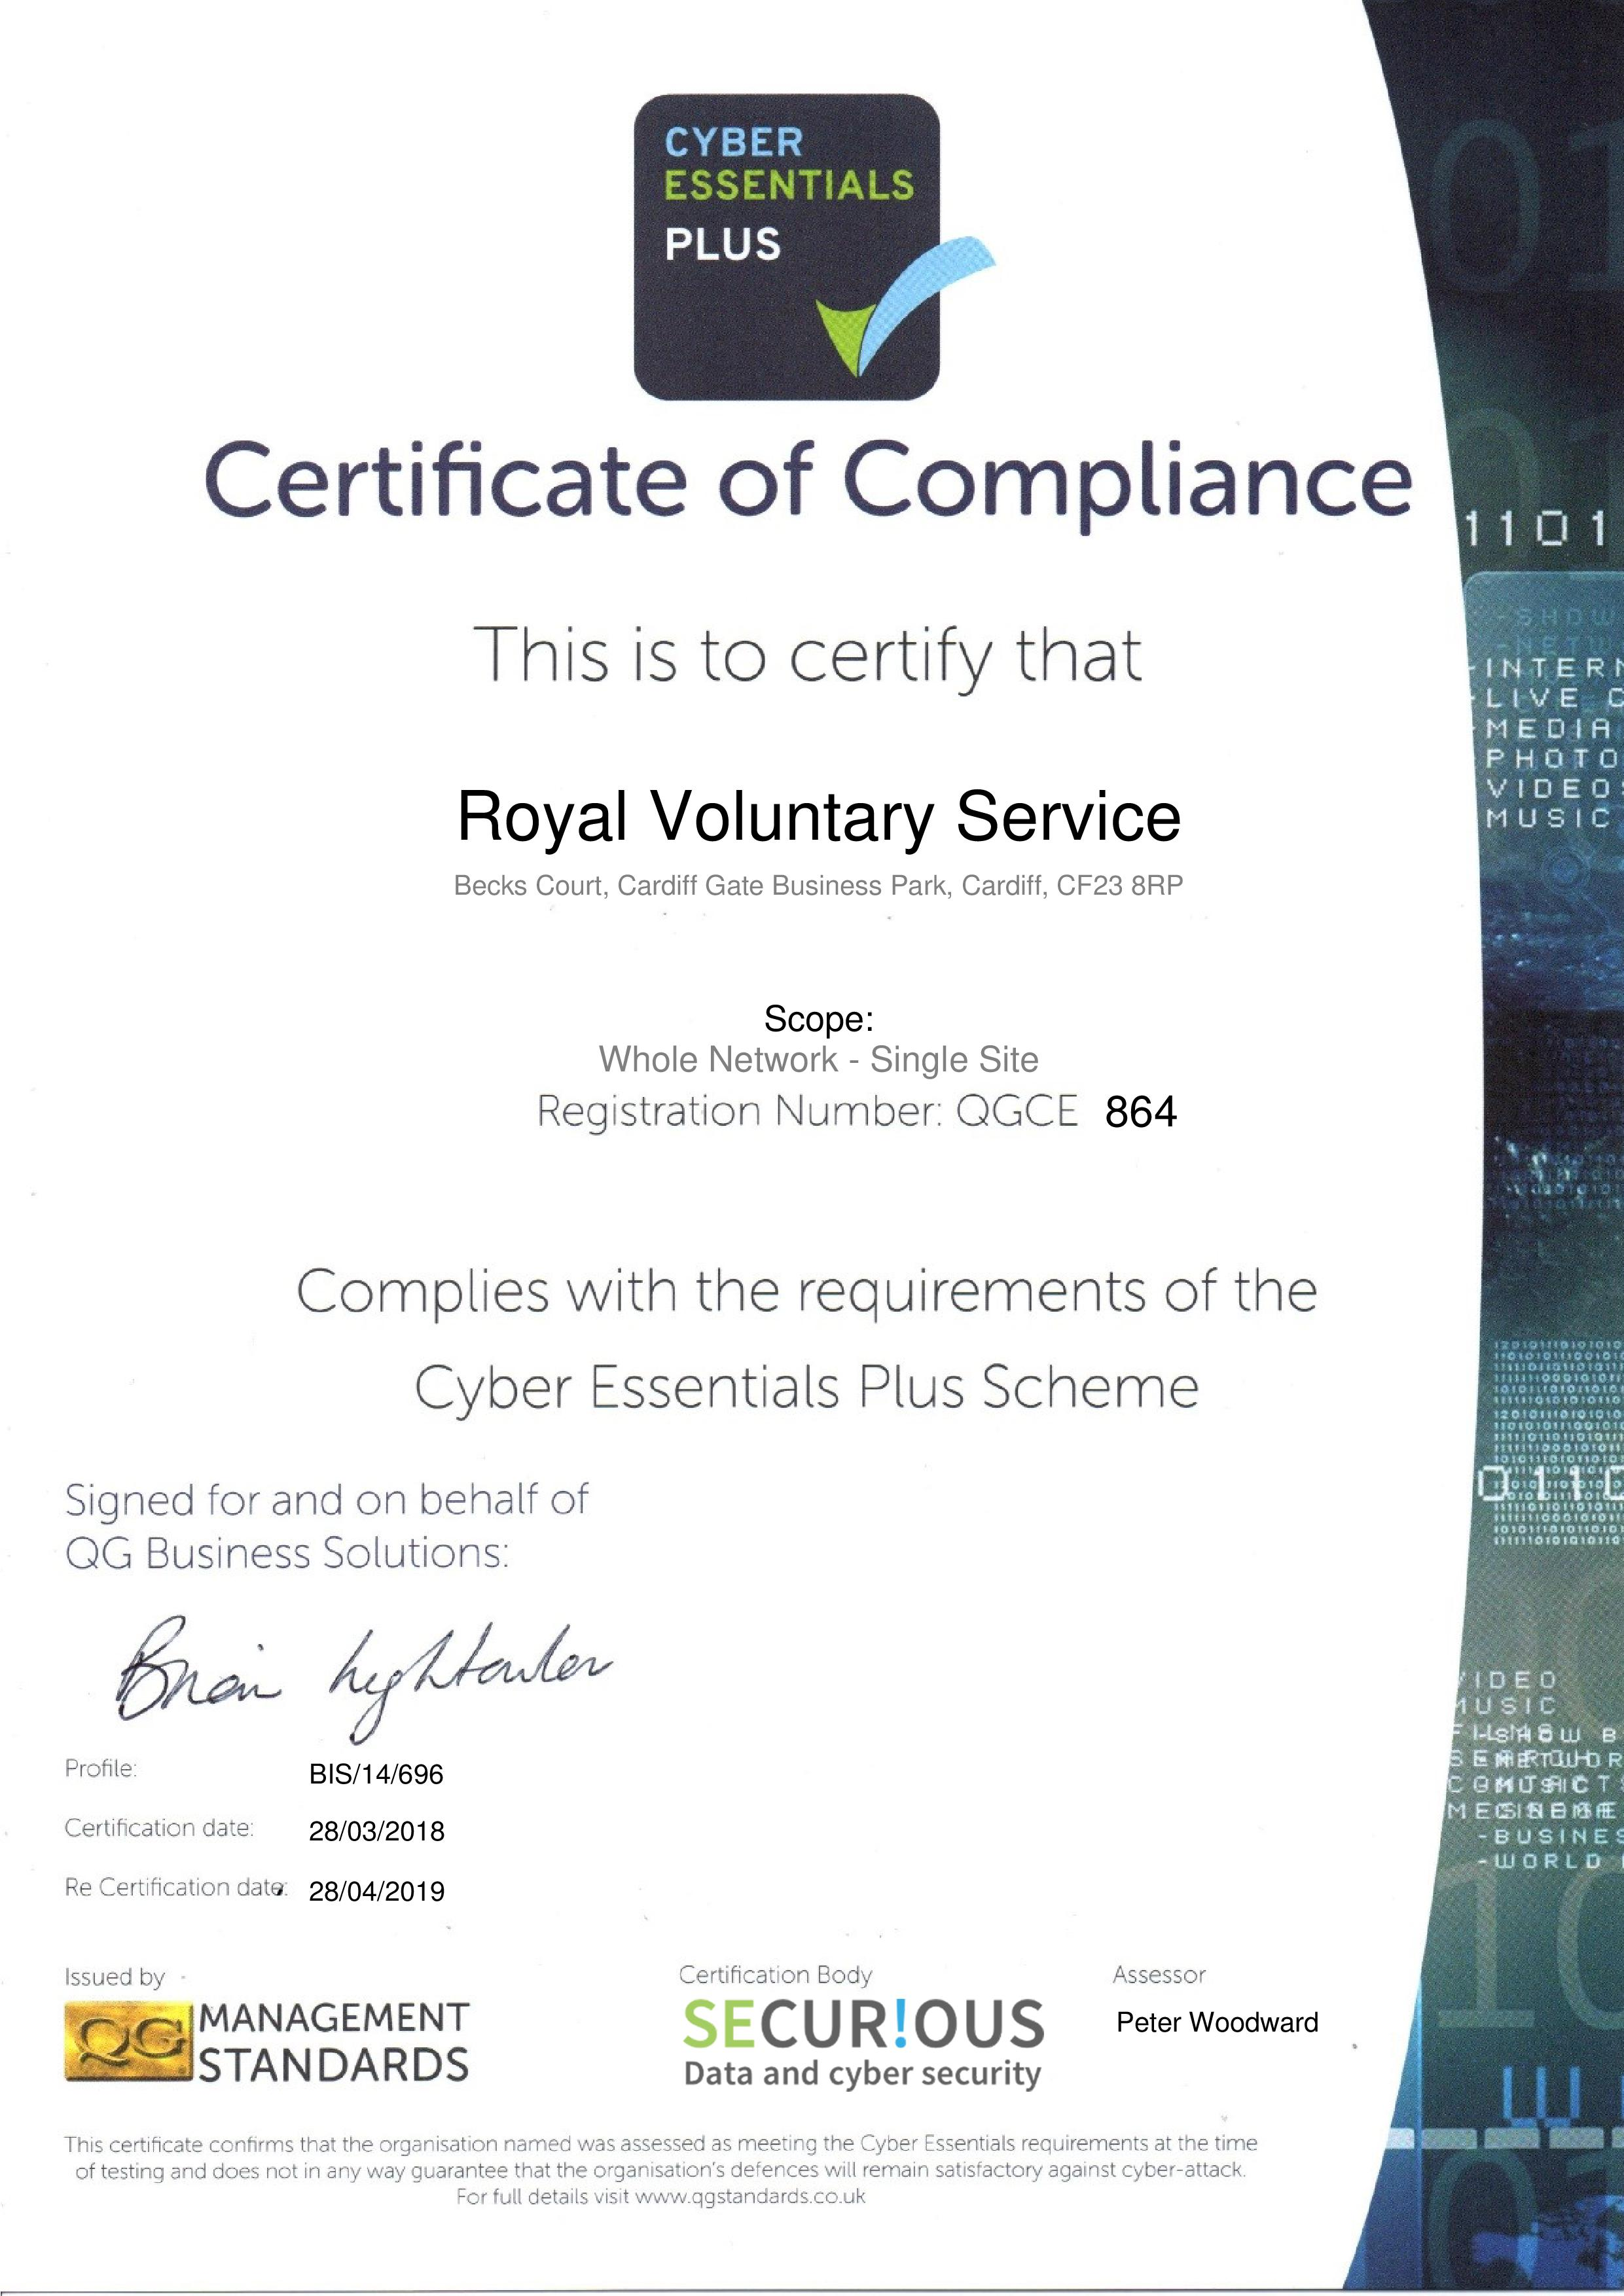 QGCE864 Royal Voluntary Service